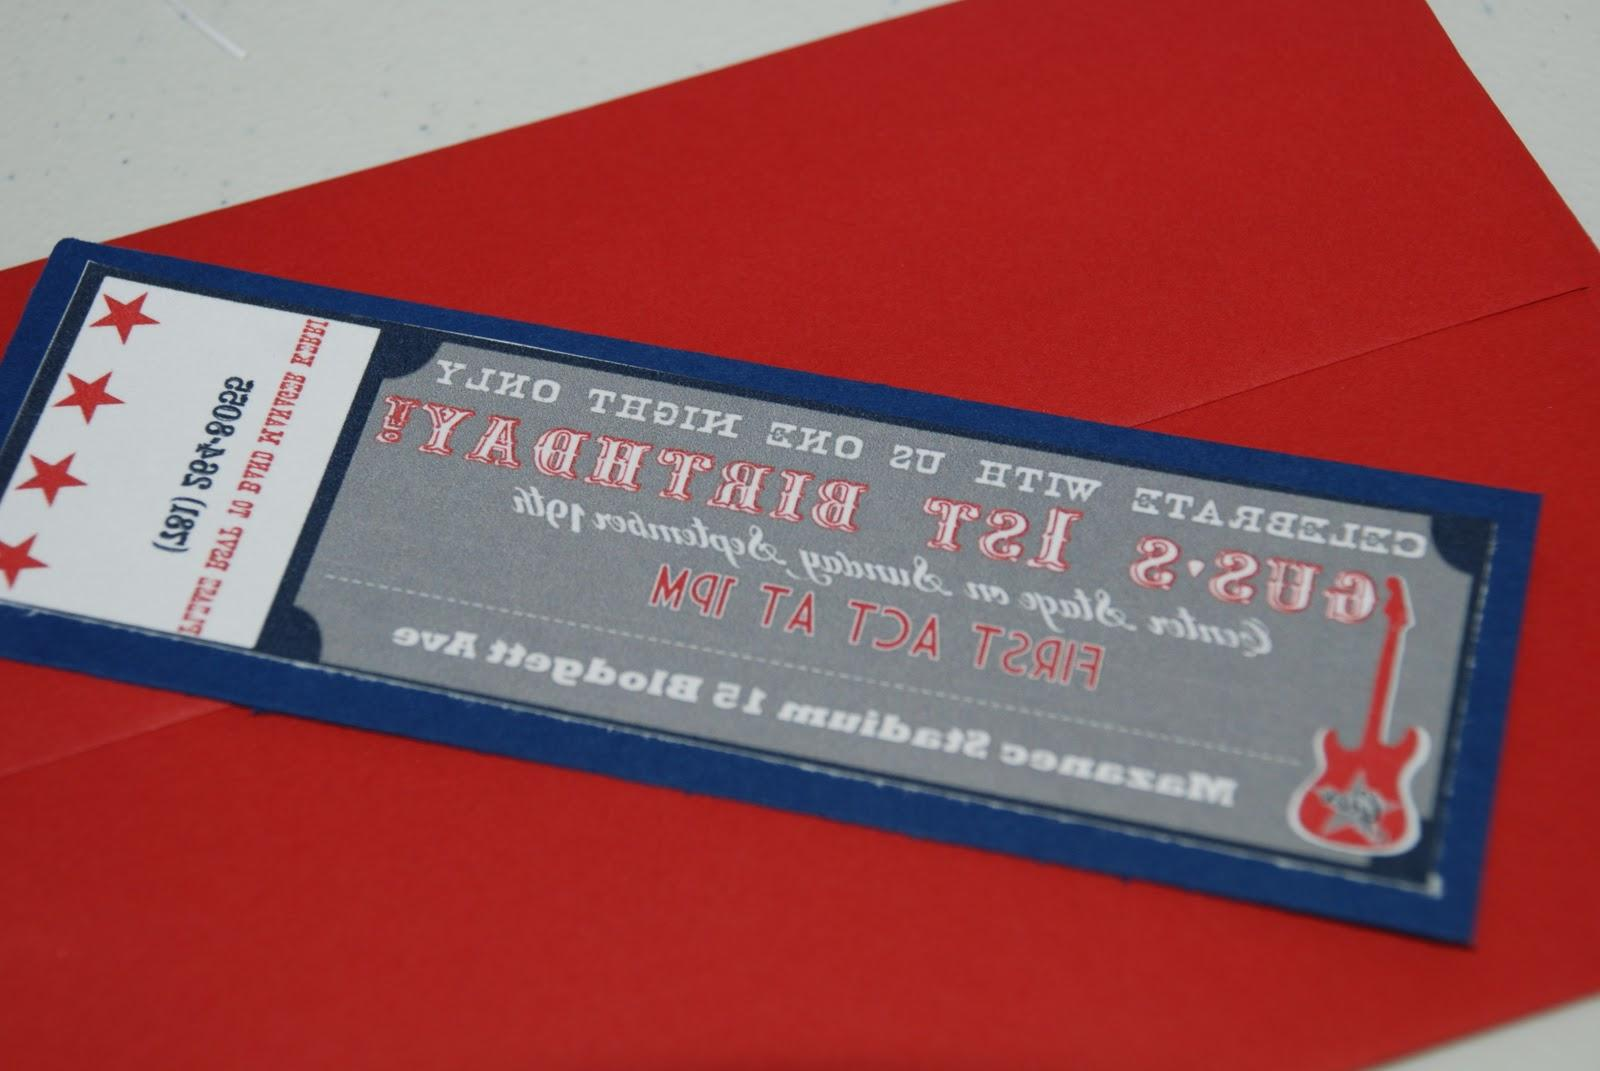 Invitation resembled a concert